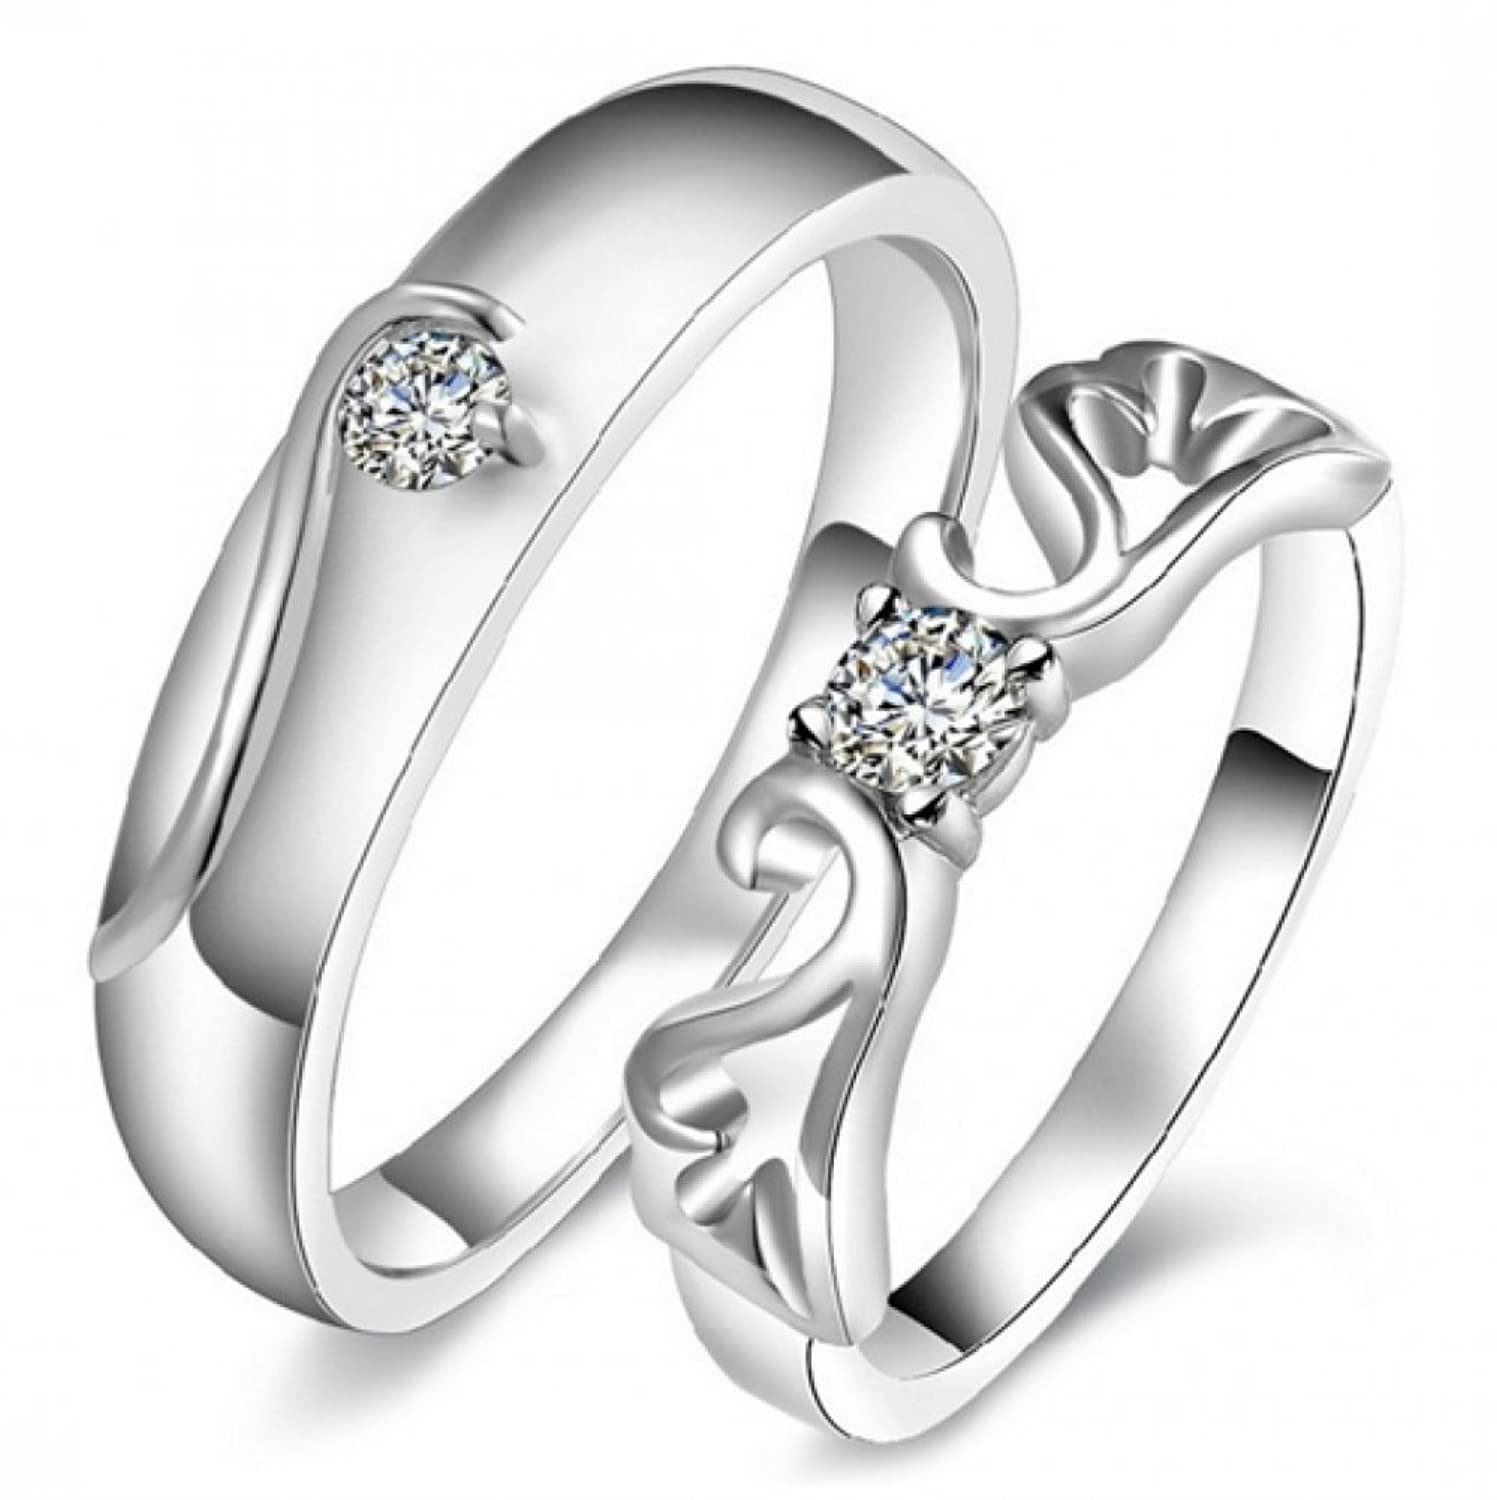 hammered mccaul goldsmiths engagement collection couple rings wedding ladies bands and mens platinum